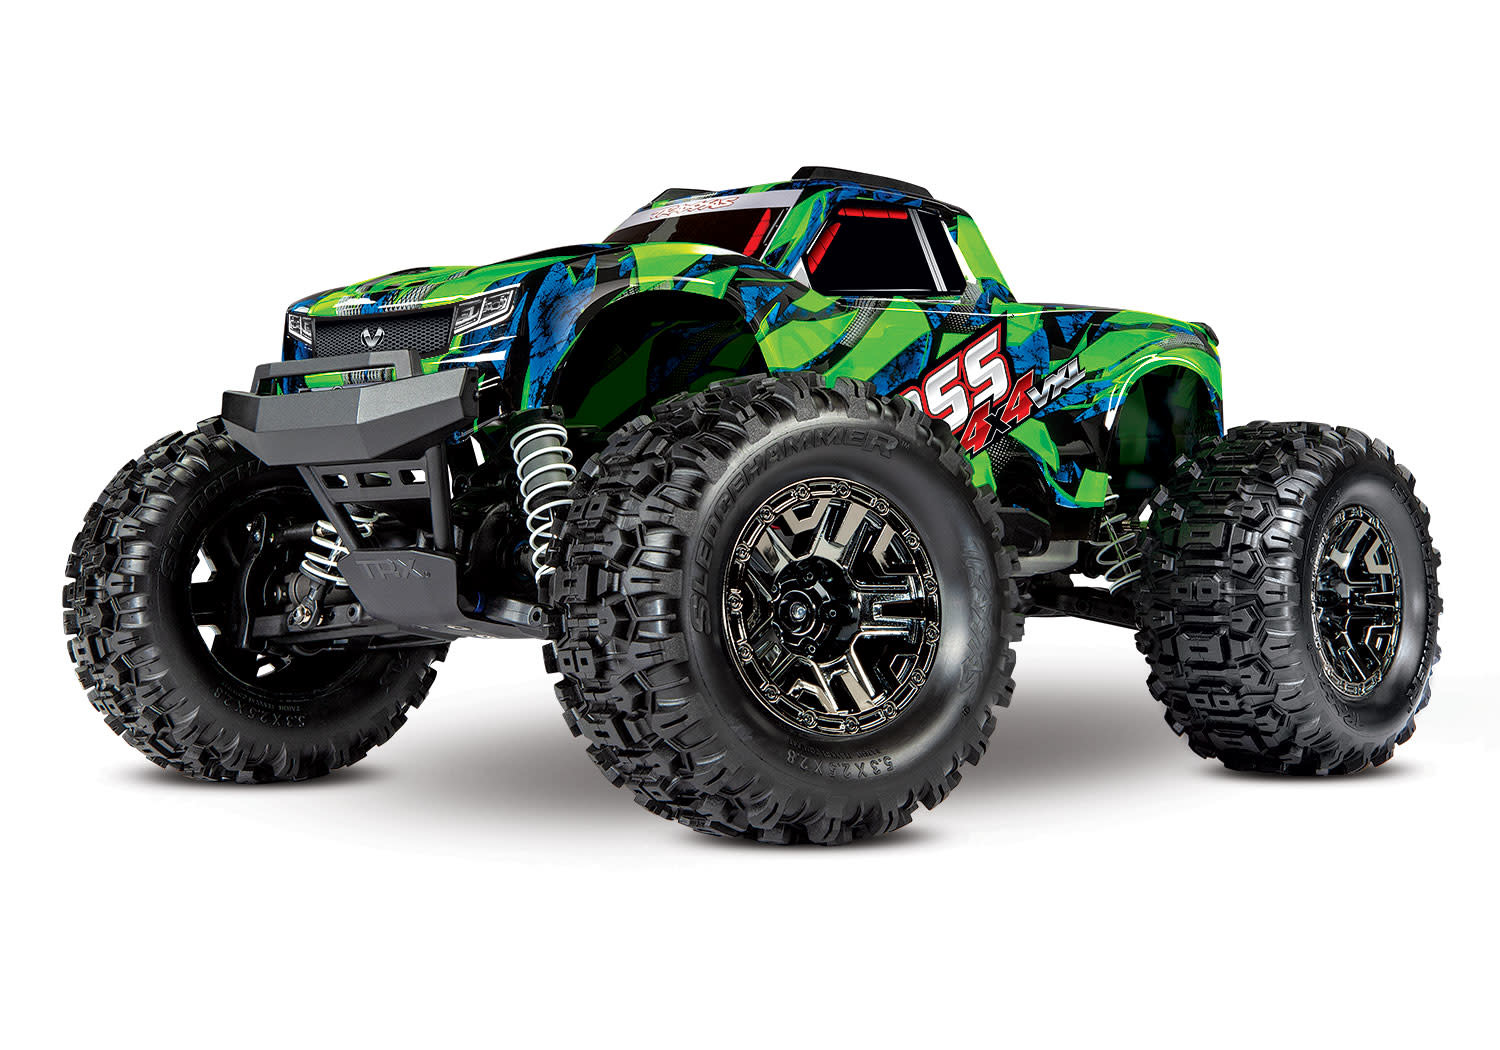 Traxxas Hoss 1/10 Scale 4WD Brushless Electric Monster Truck, VXL-3S, TQi - Green TRX90076-4G-6